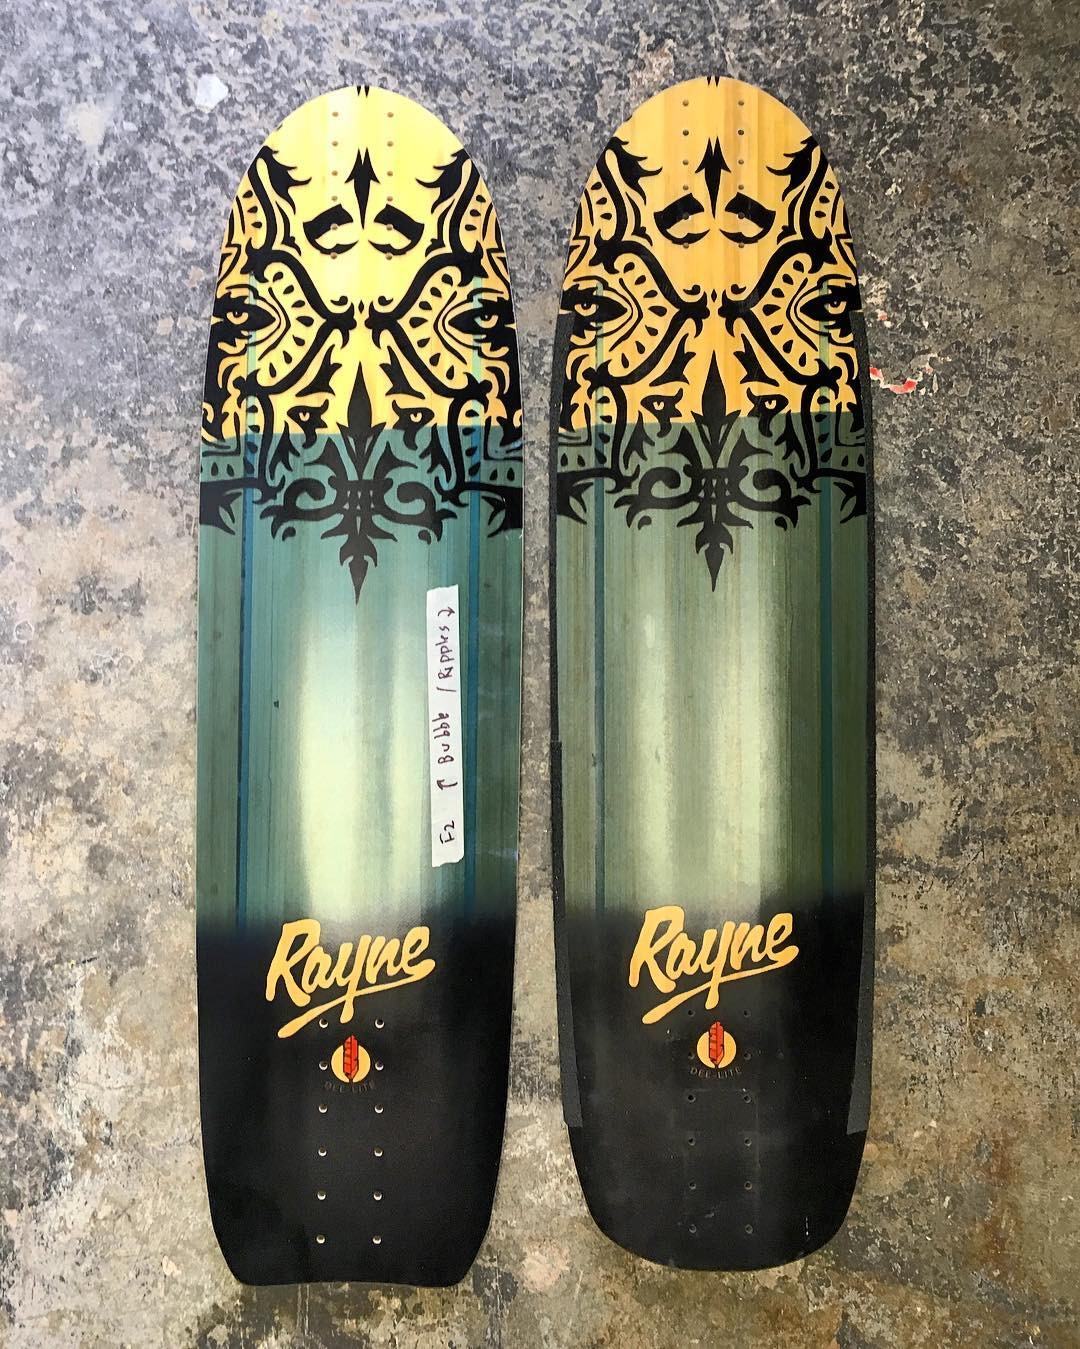 Team rider @steviedudemayne wanted to smooth things over a bit with his Genesis so he traced an Otherside tail and took it to the grinder. If you're in the Chop Shop mood show us what you got! #raynechopshop #raynelongboards #raynedeelite #raynegenesis...